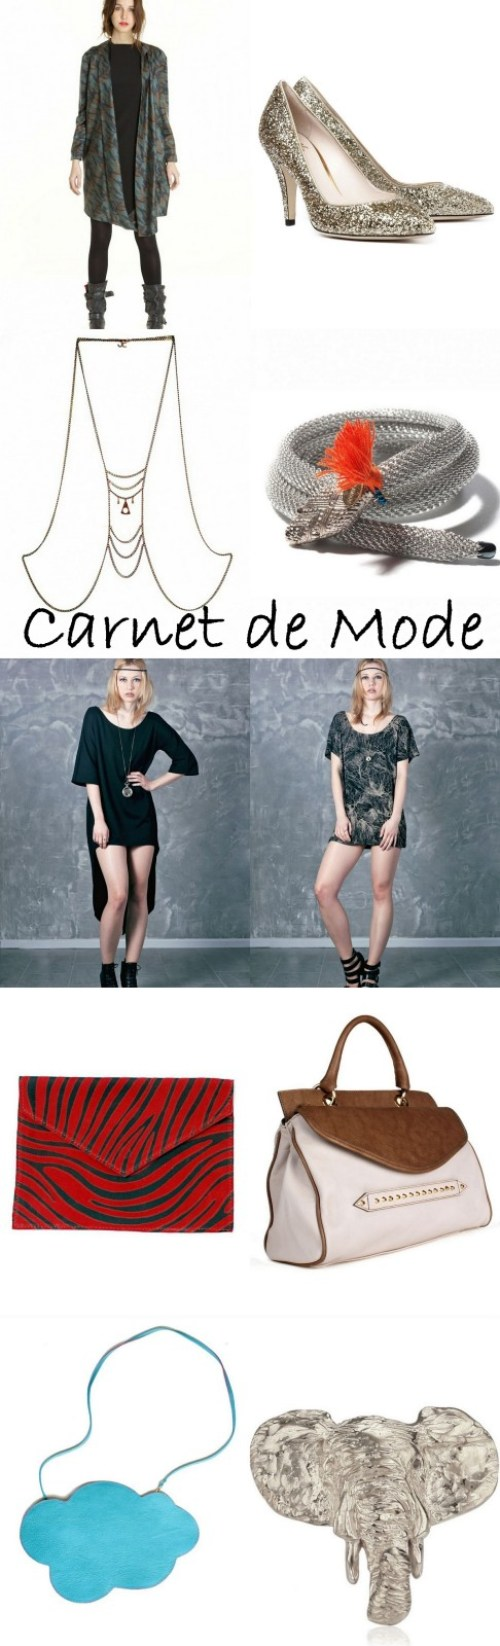 carnet de mode bis-copie-1